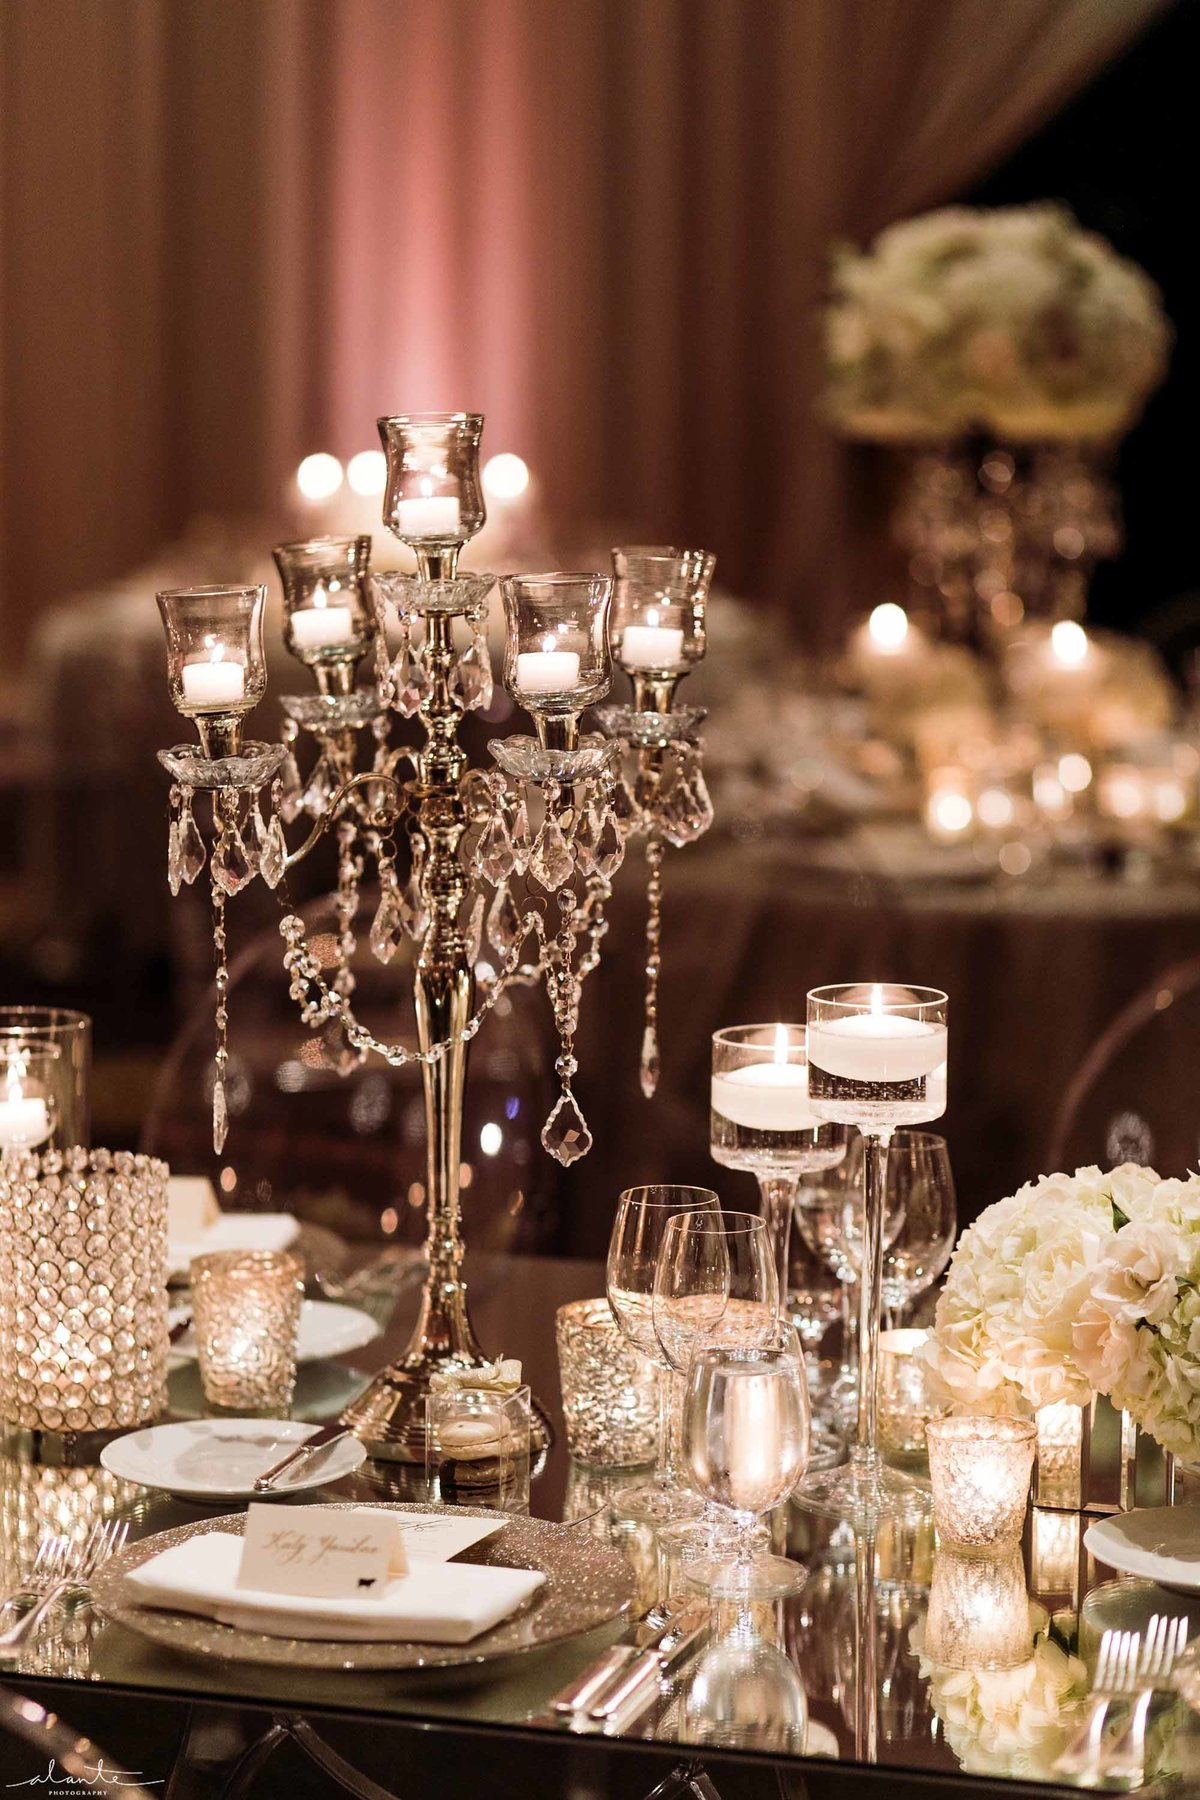 Crystal candelabra on a mirrored table for this winter wedding reception.